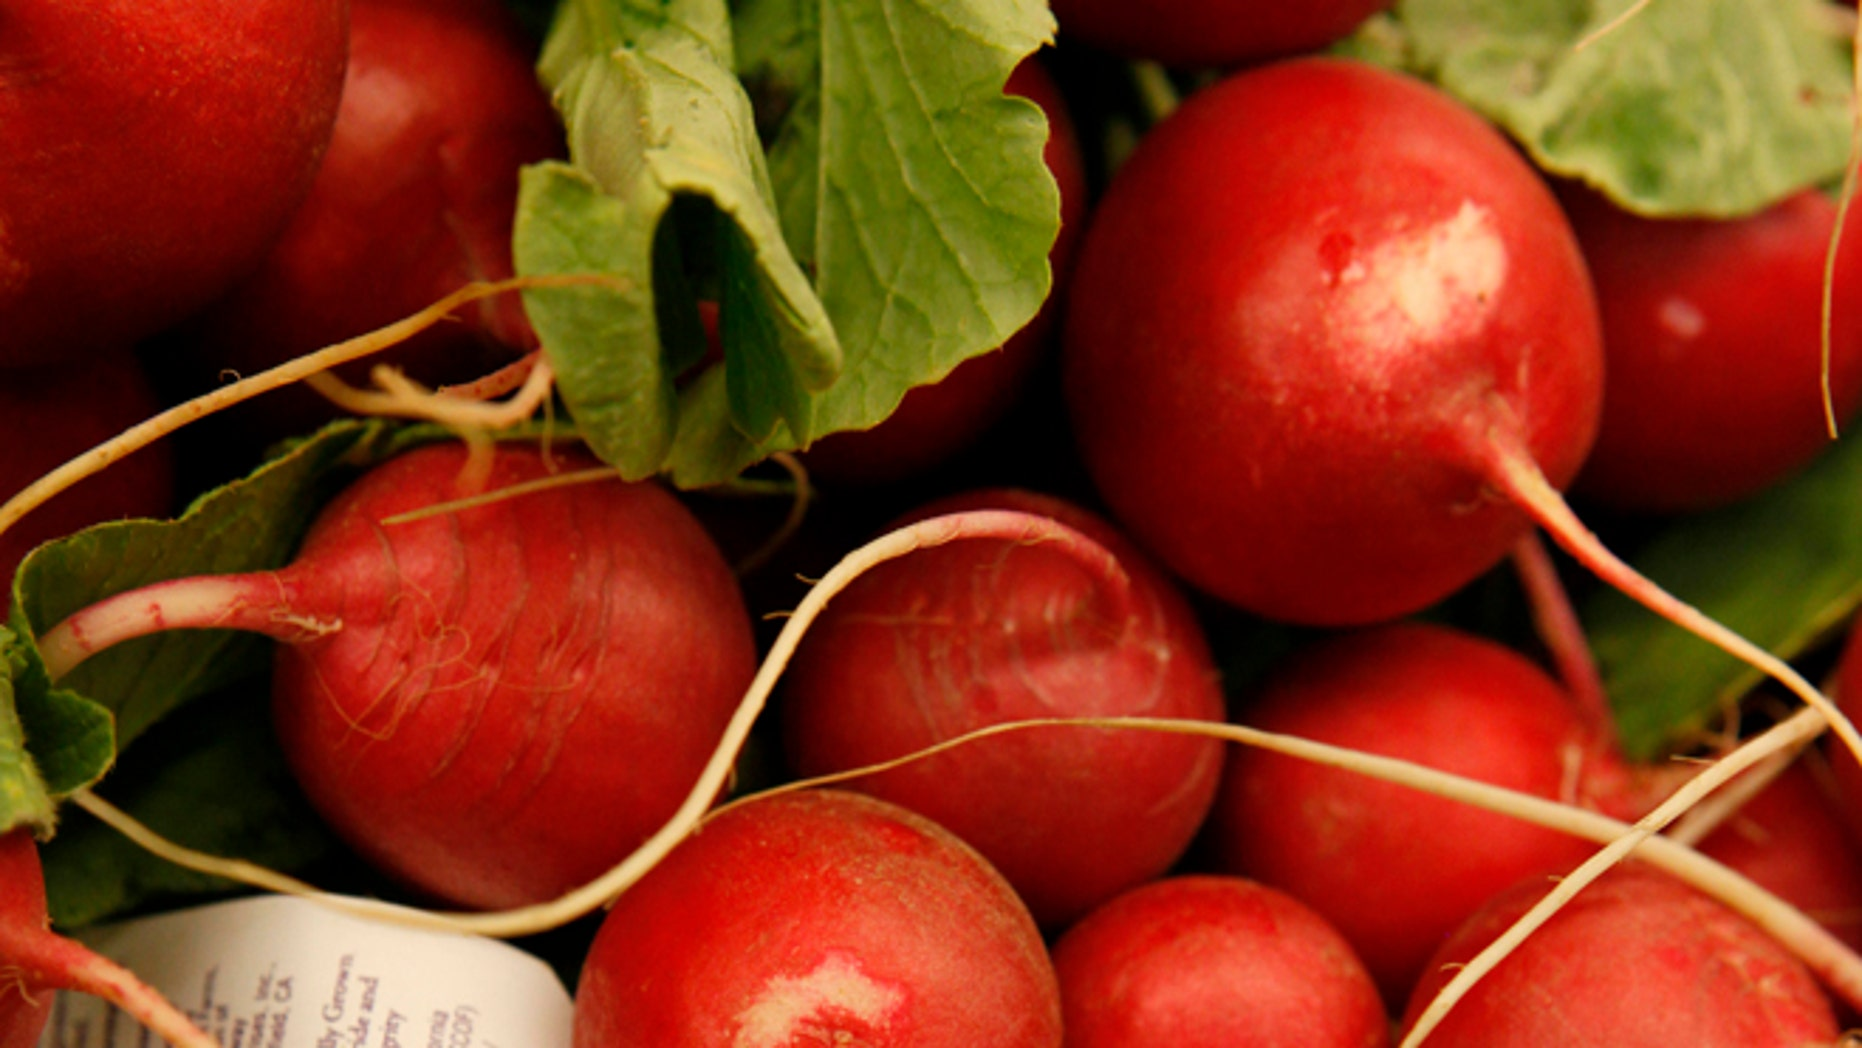 This March 16, 2011, file photo shows organic radishes at the Pacifica Farmers Market in Pacifica, Calif. AP Photo, File)